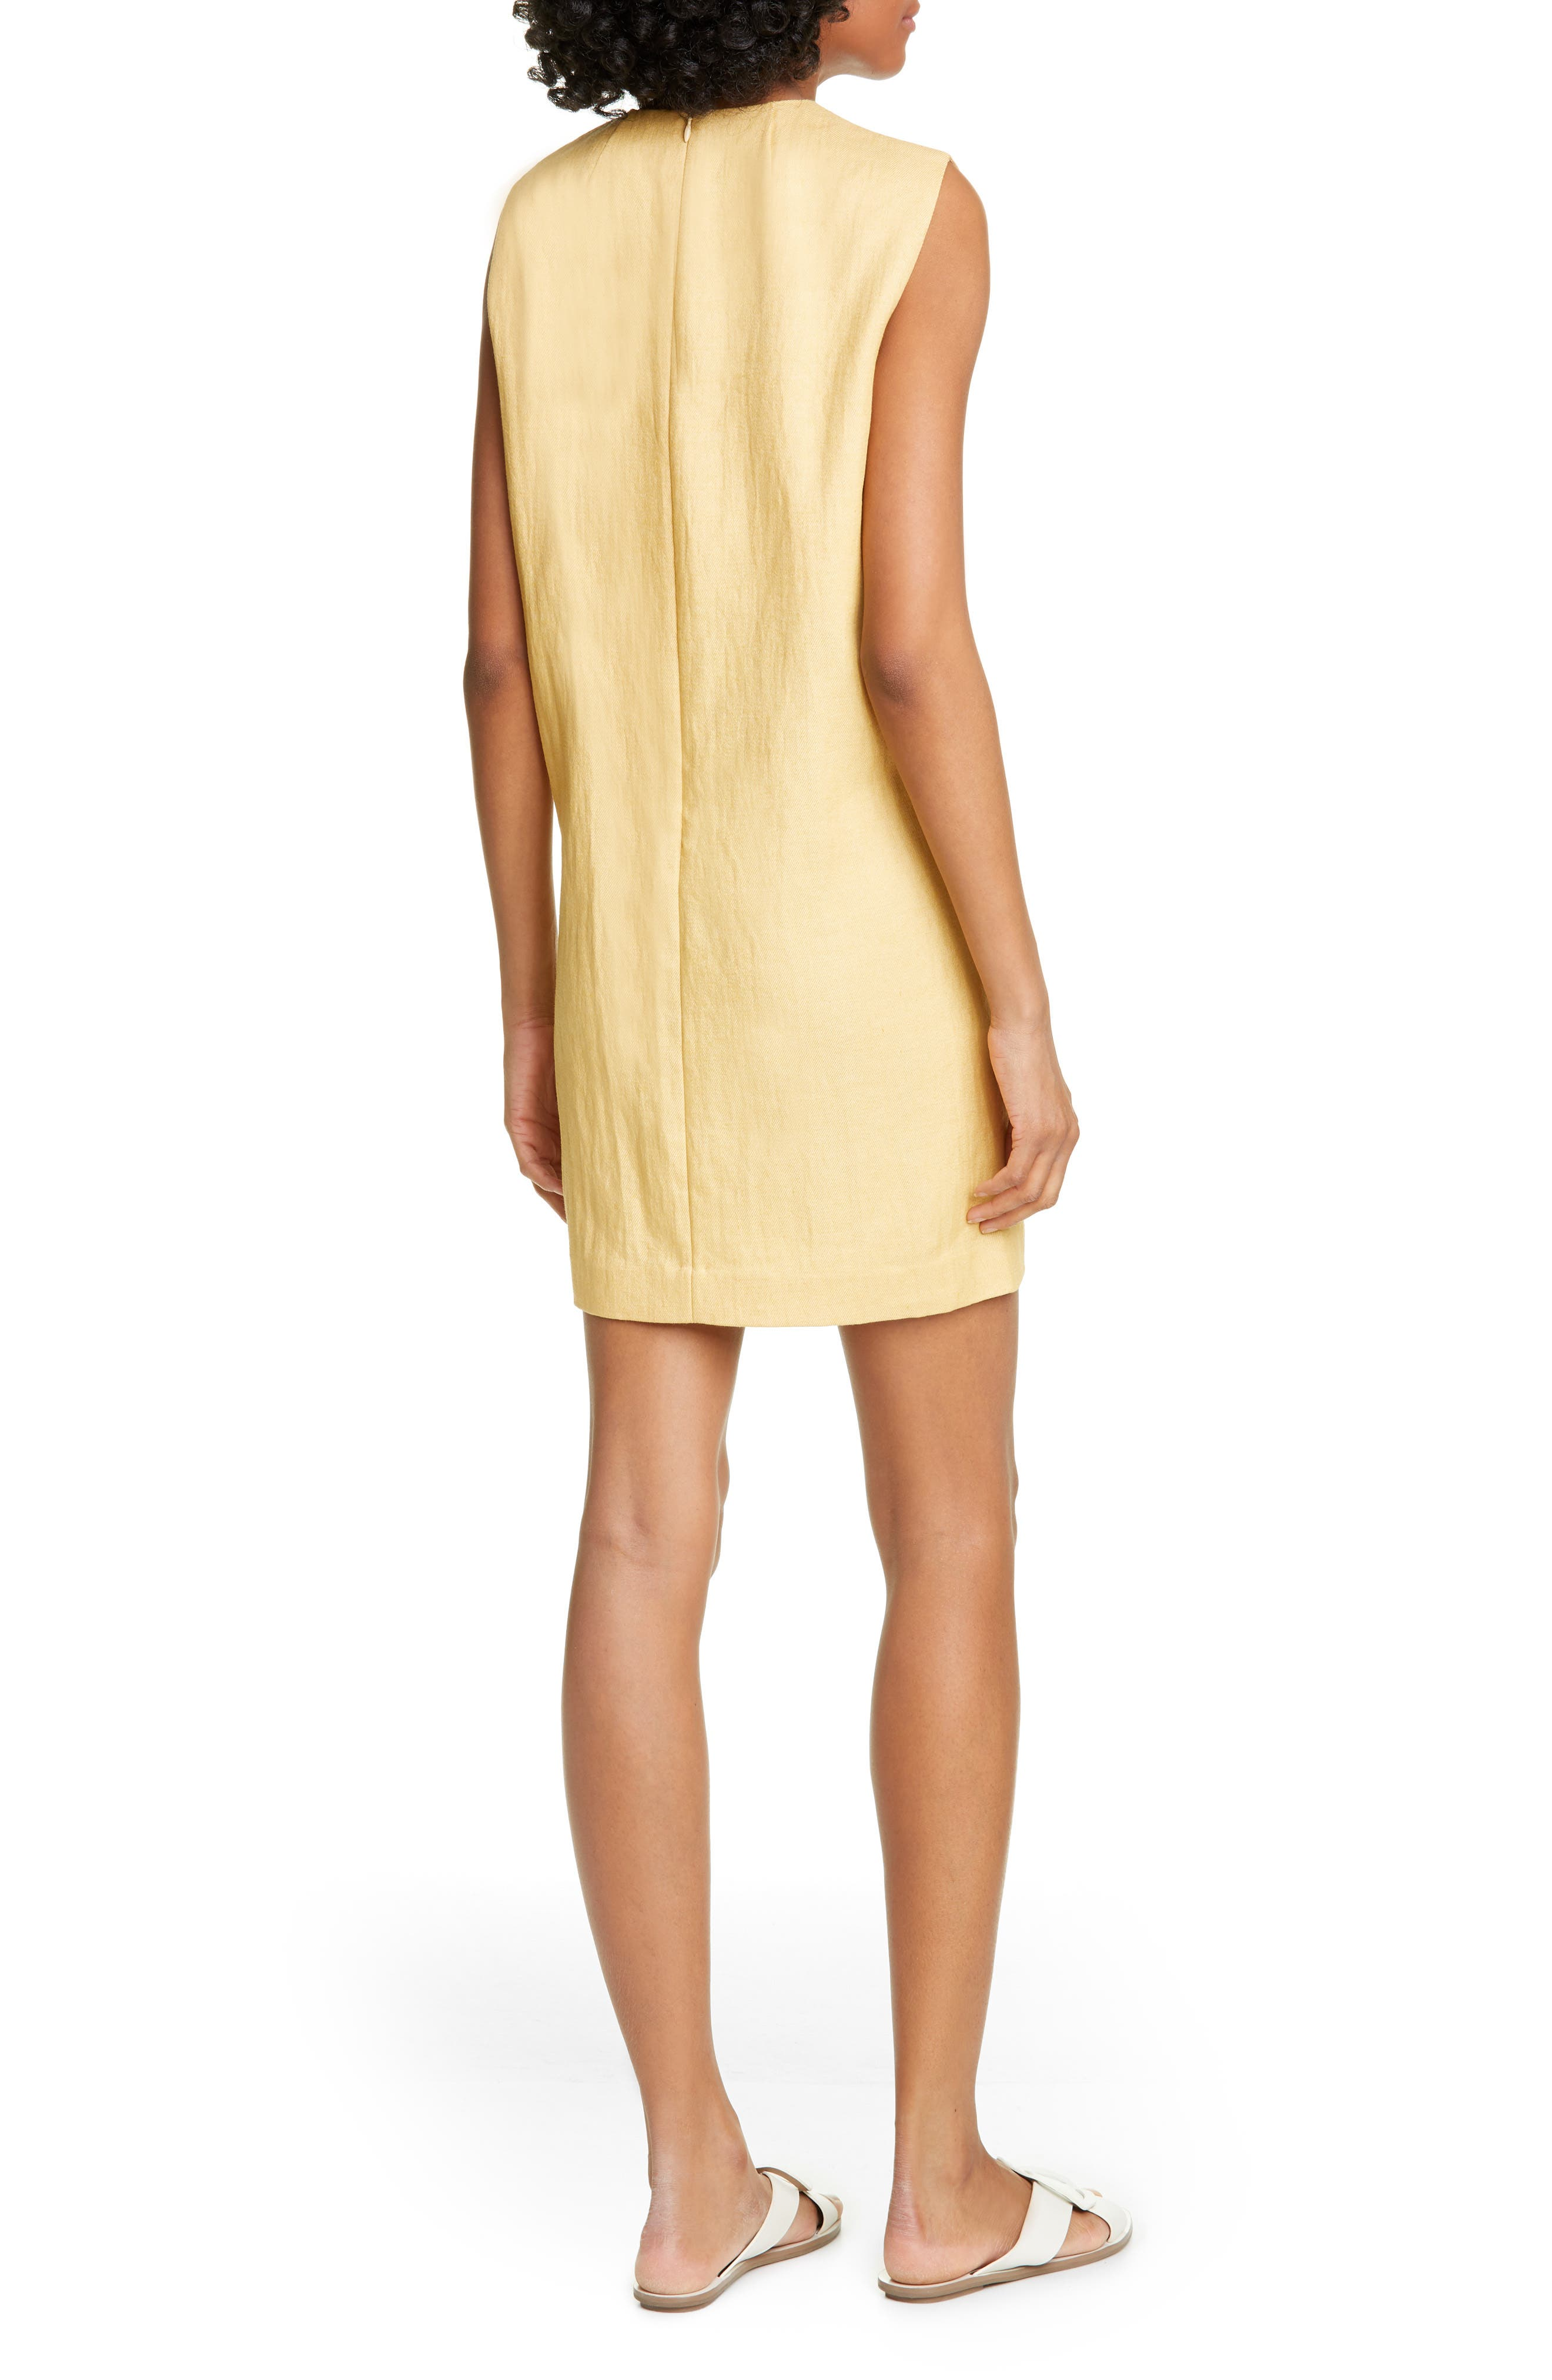 7d6e9c3836a6b Women's Theory Clothing Sale | Nordstrom